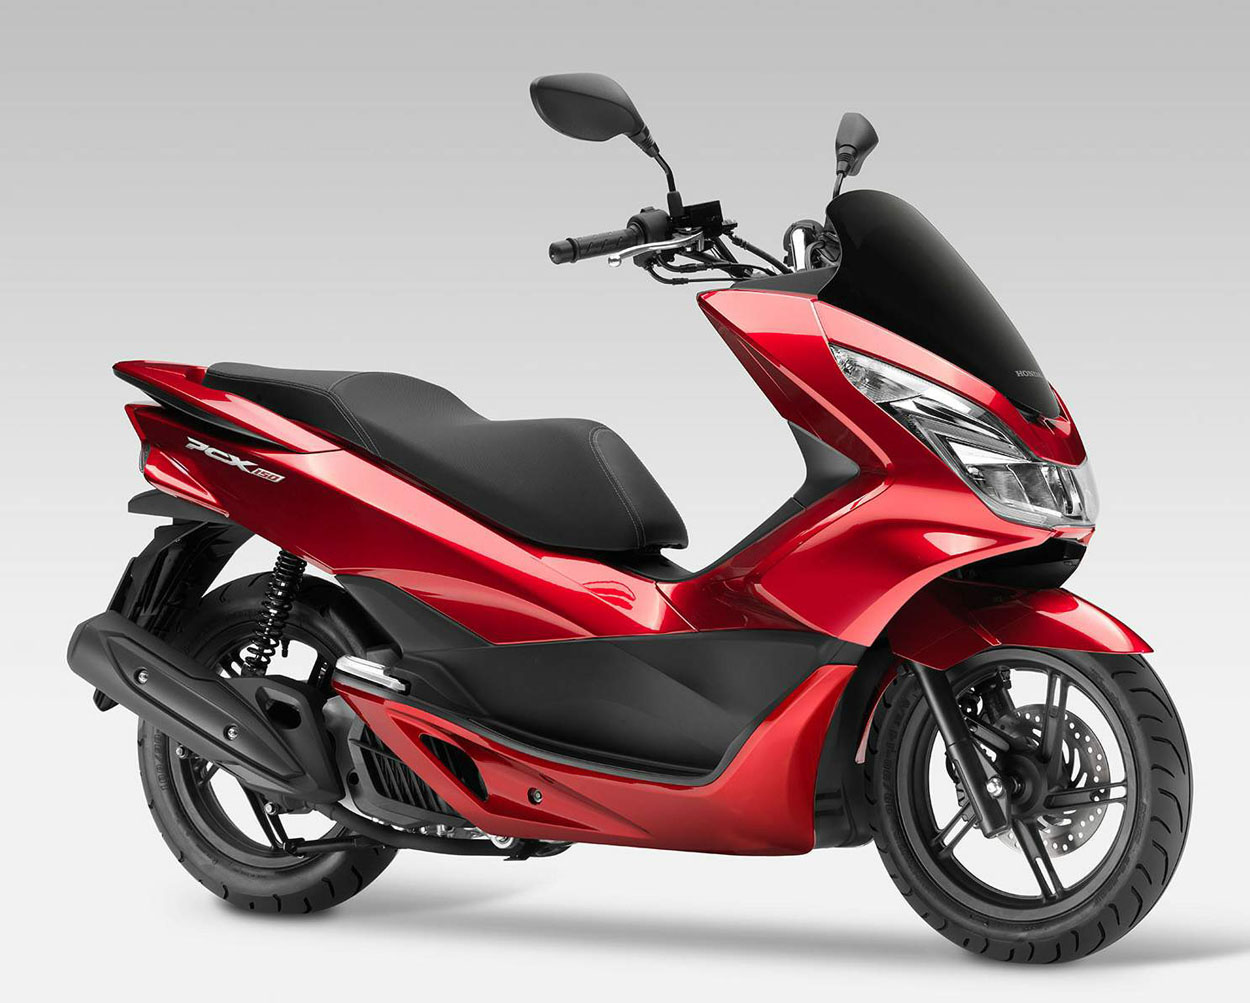 honda pcx 150. Black Bedroom Furniture Sets. Home Design Ideas